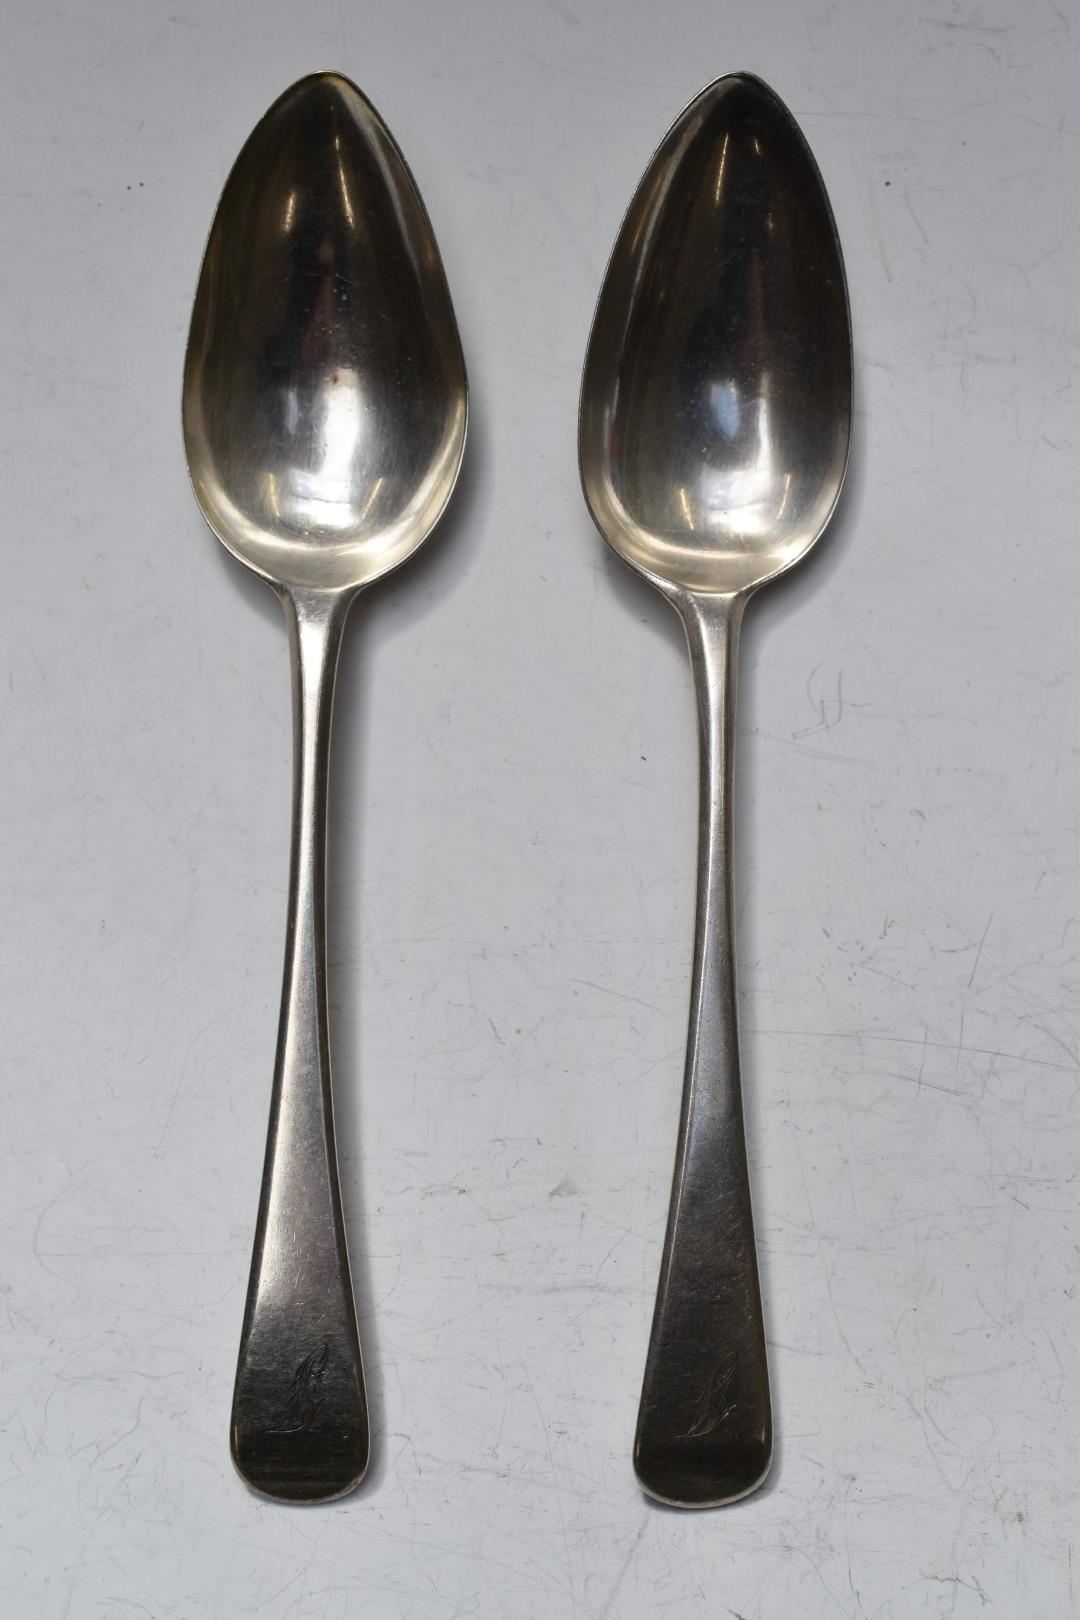 Pair of George III hallmarked silver Old English pattern table spoons, London 1702, maker Thomas